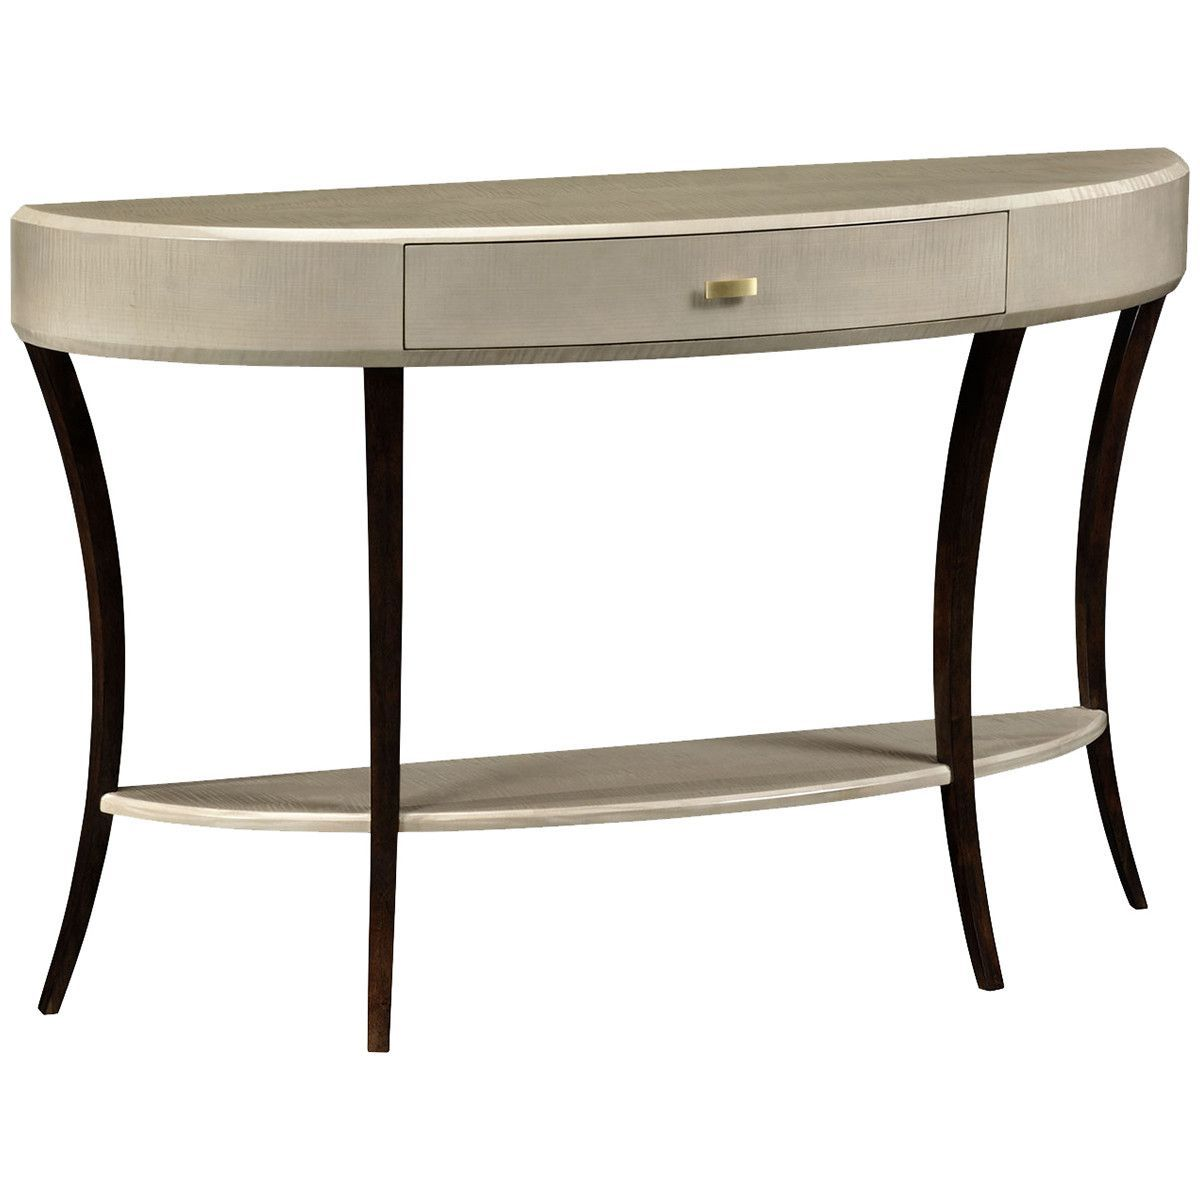 Art deco hallway ideas  Jonathan Charles Opera Art Deco Large Demilune Console Table